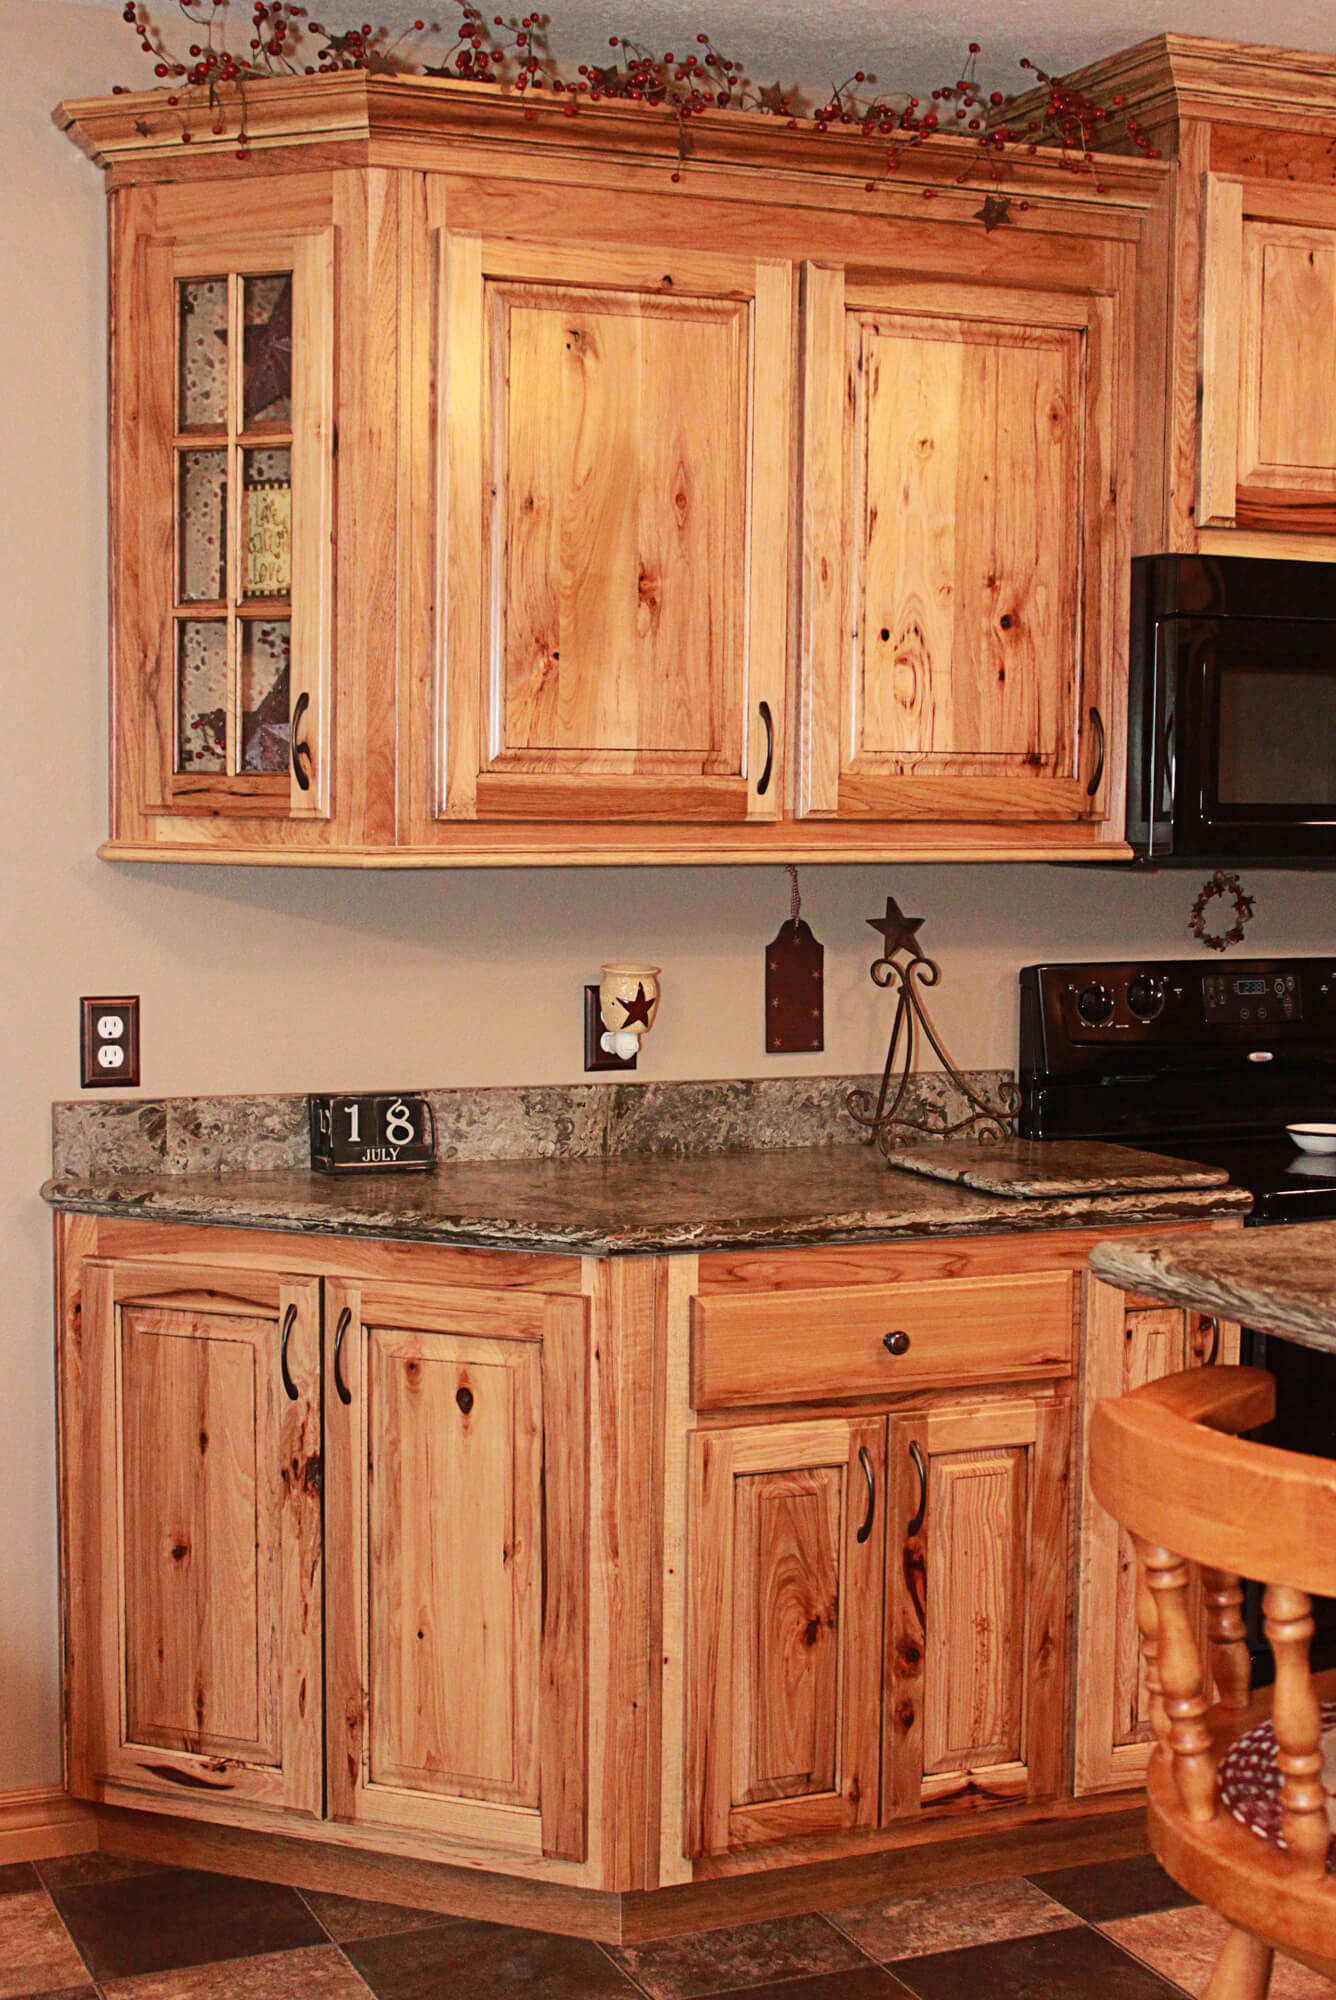 The cabinets plus rustic hickory kitchen cabinets for Kitchen cabinets pictures